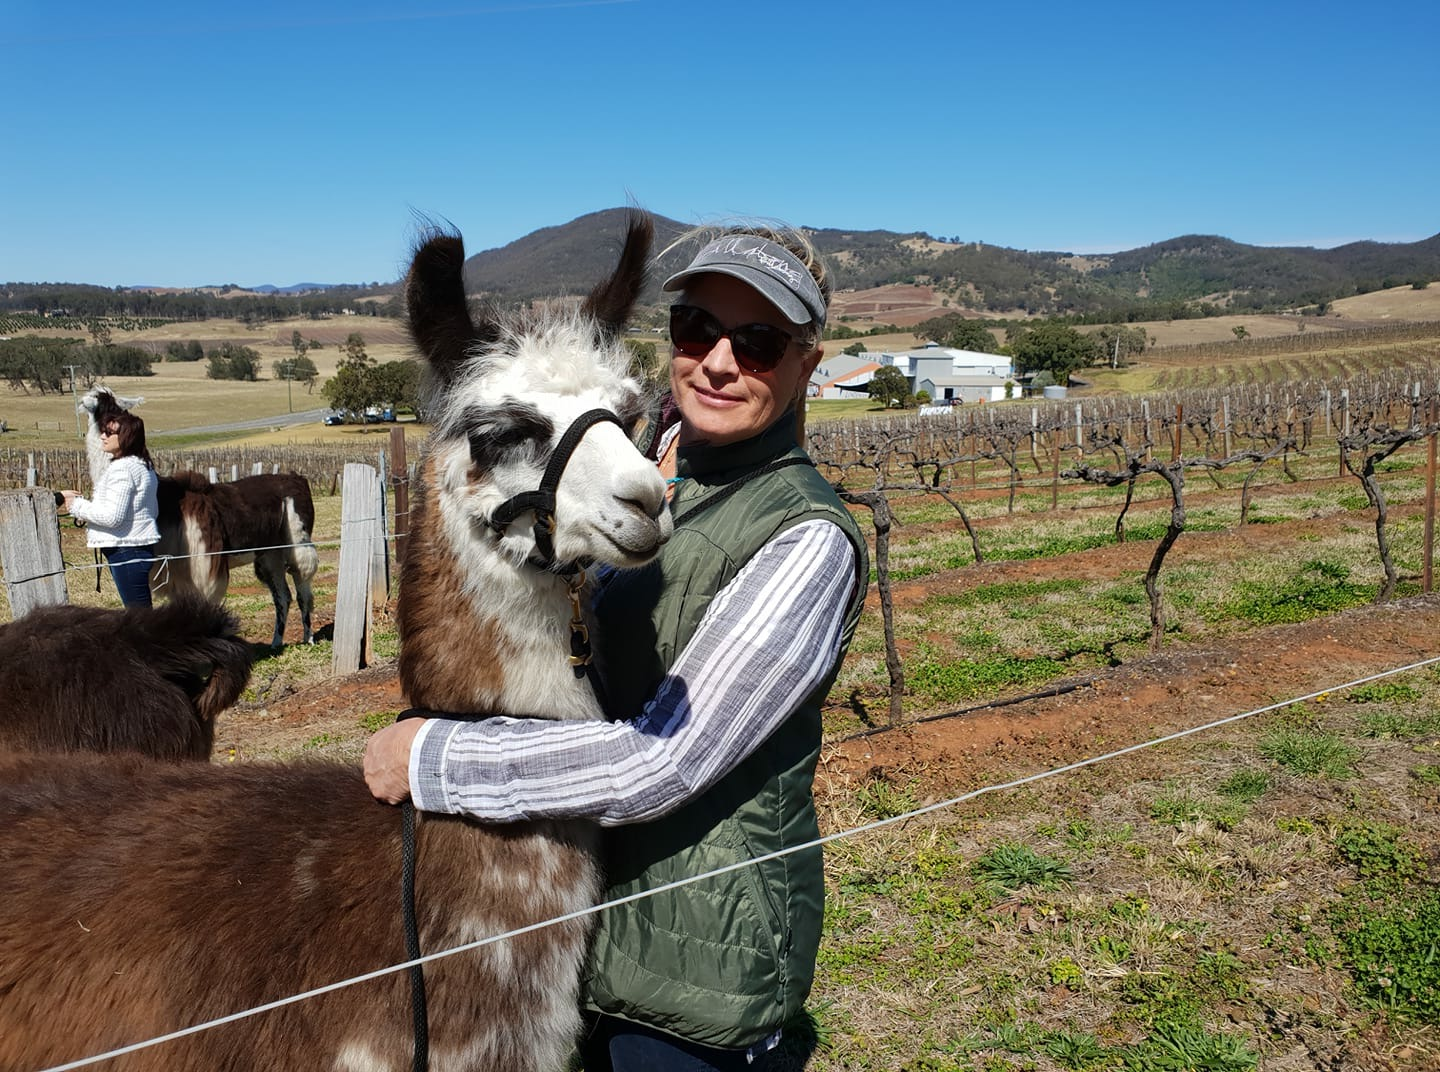 - Enjoy a one hour guided walk through the vineyard, accompanied by one of our friendly llamas - your very own walking companion.